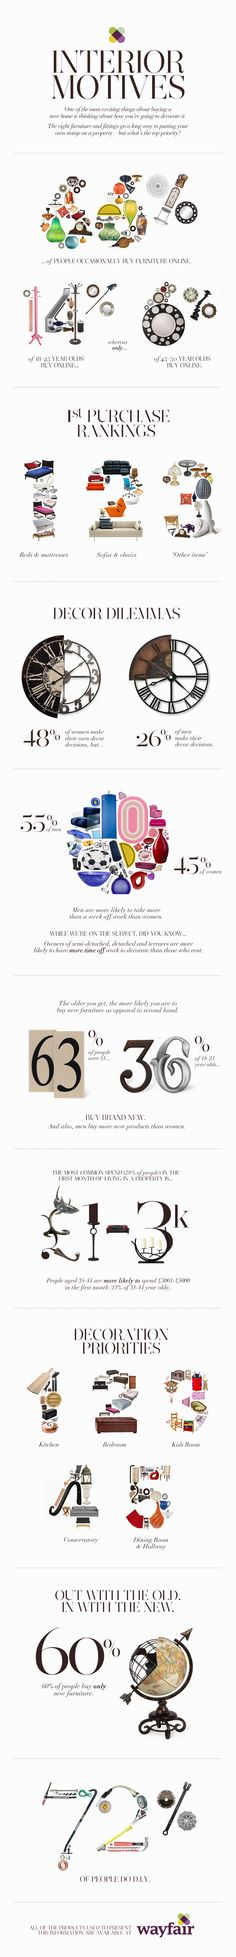 Infographic on the patterns of furnishing purchases.